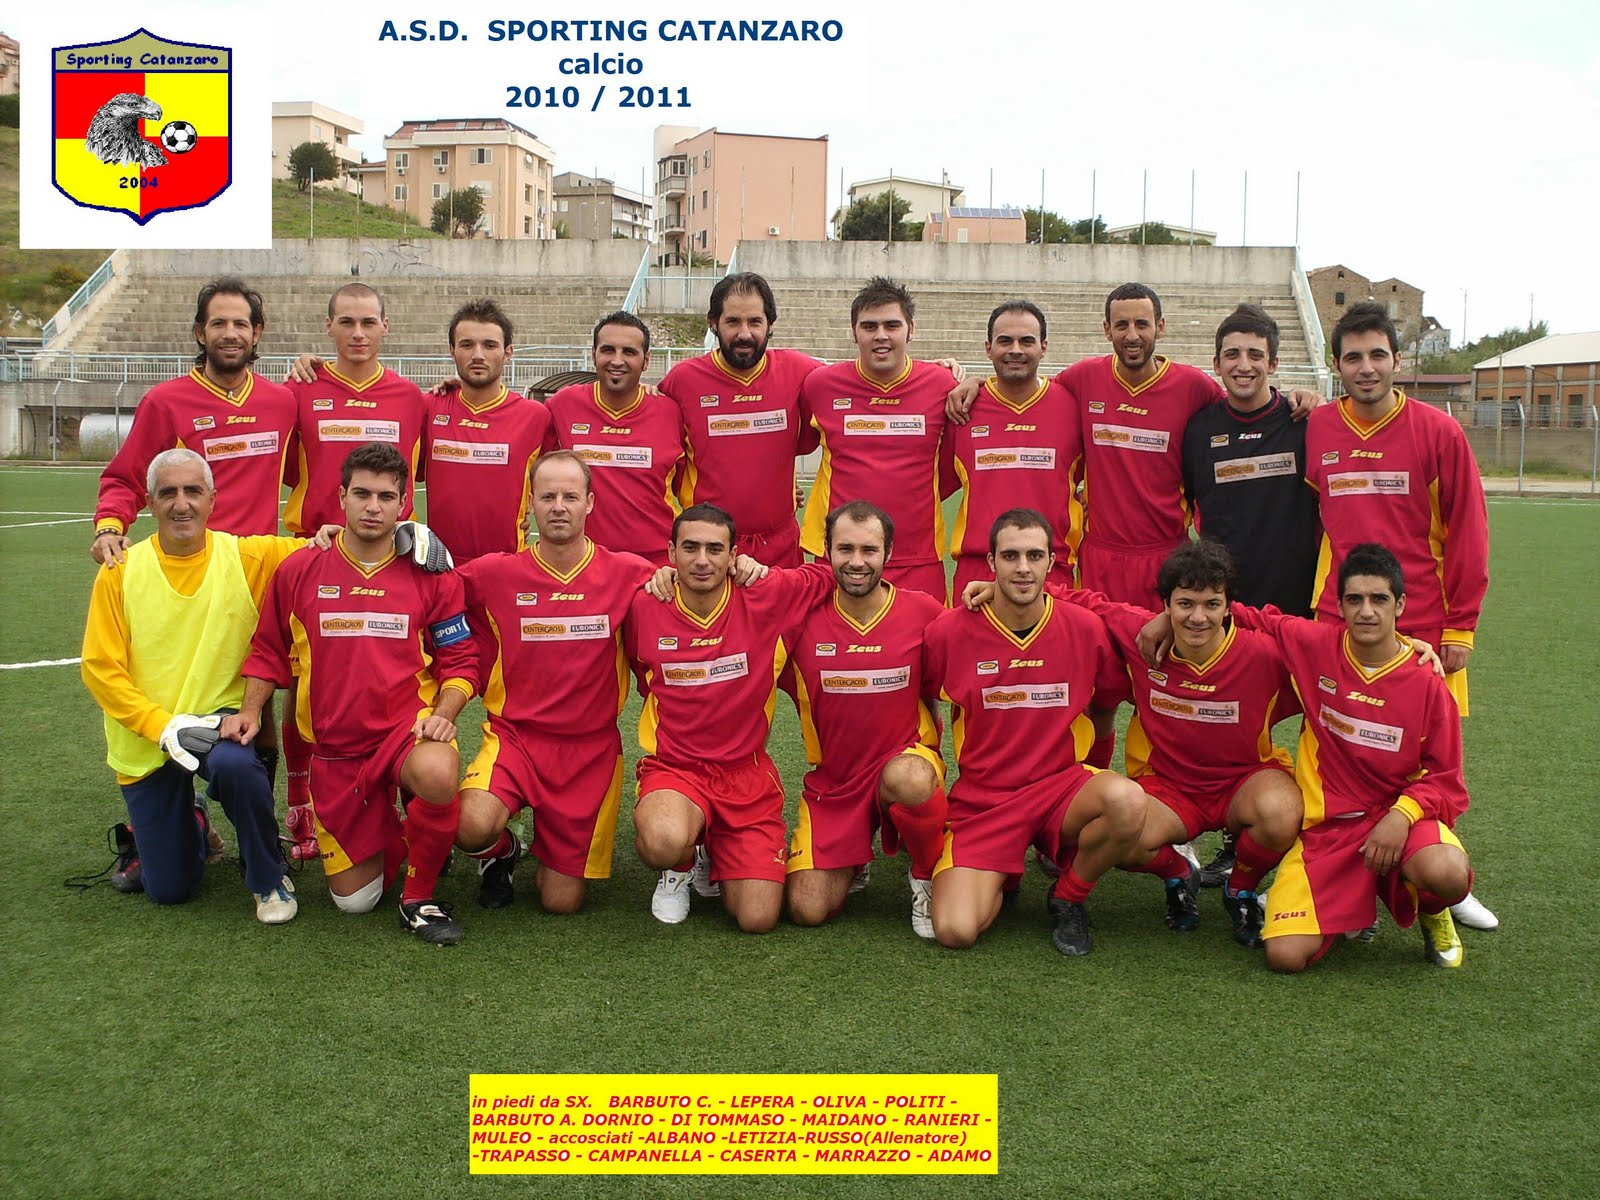 catanzaro calcio - photo #24